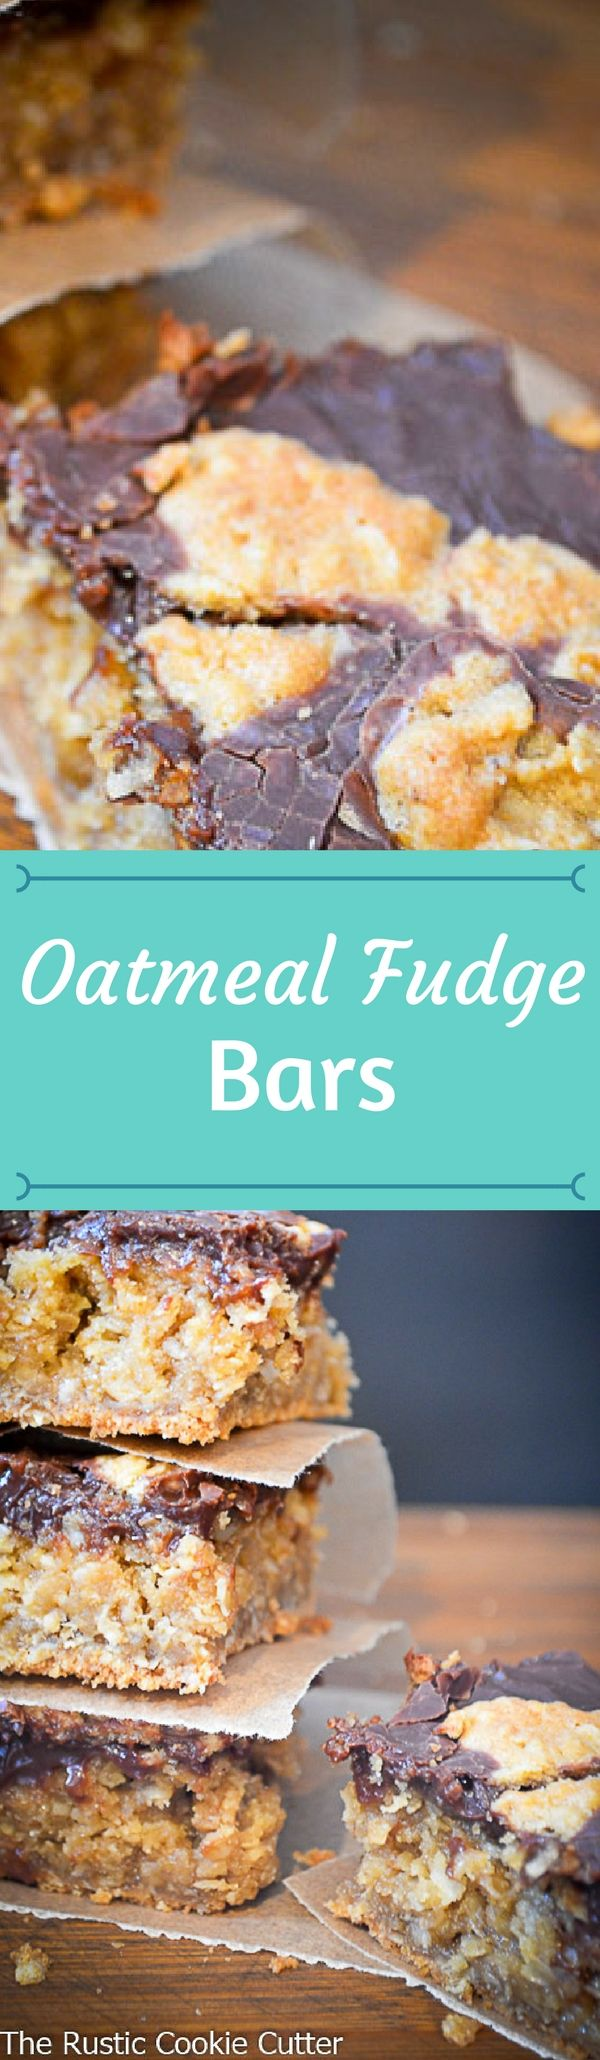 Bring in the New Year with this amazingly delicious Oatmeal Fudge Bar!  It's a great way to start the year!